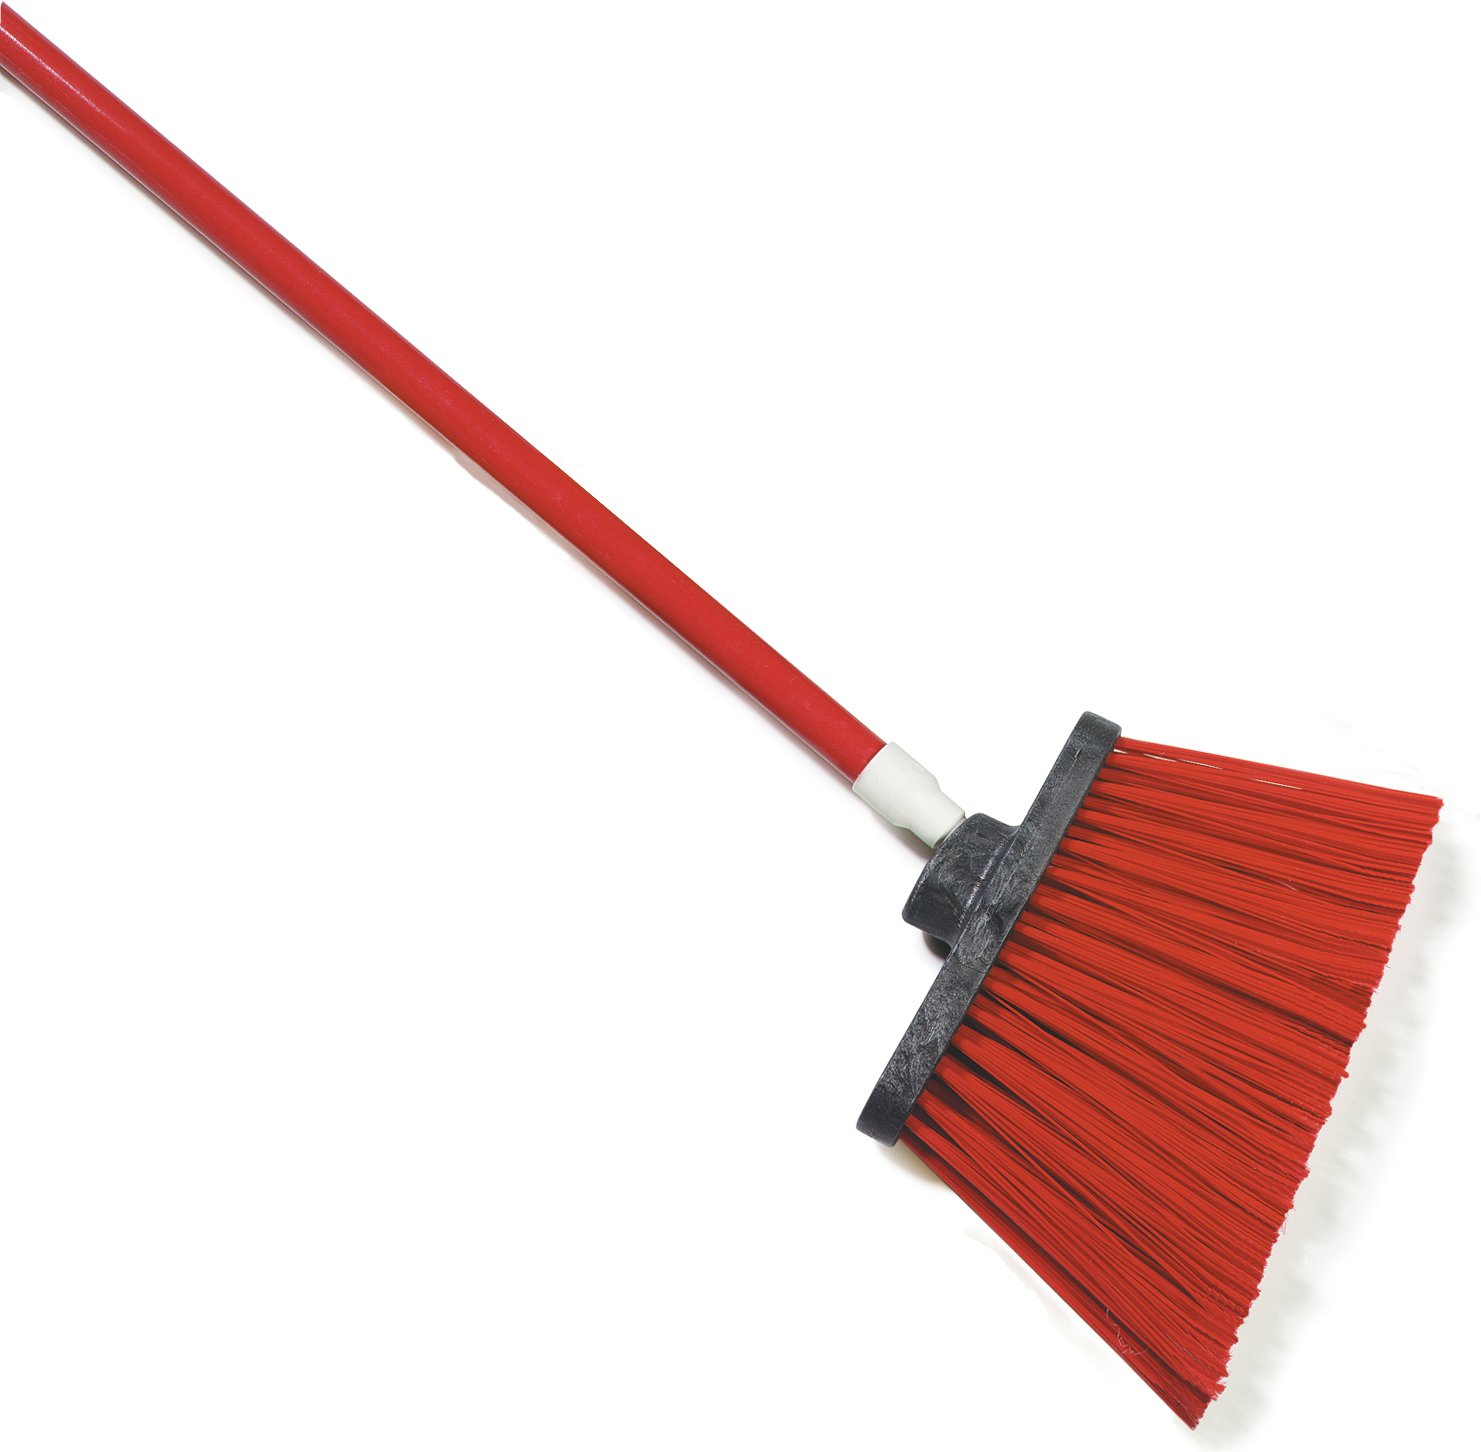 Carlisle 4108305 Sparta Duo-Sweep Unflagged Angle Broom with Fiberglass Handle, 54'' Length, Red (Pack of 12) by Carlisle (Image #10)